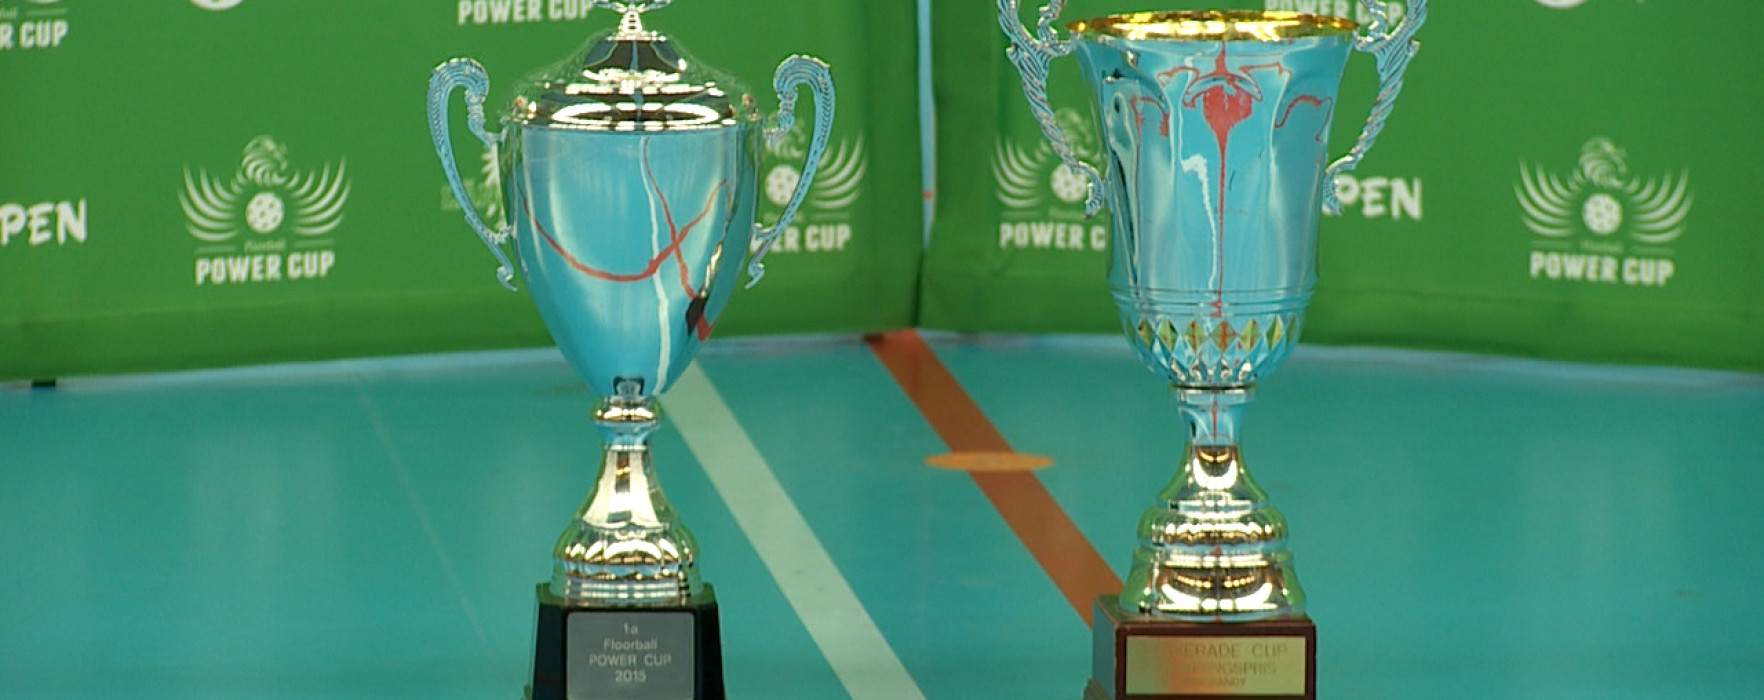 Power Cup 2015